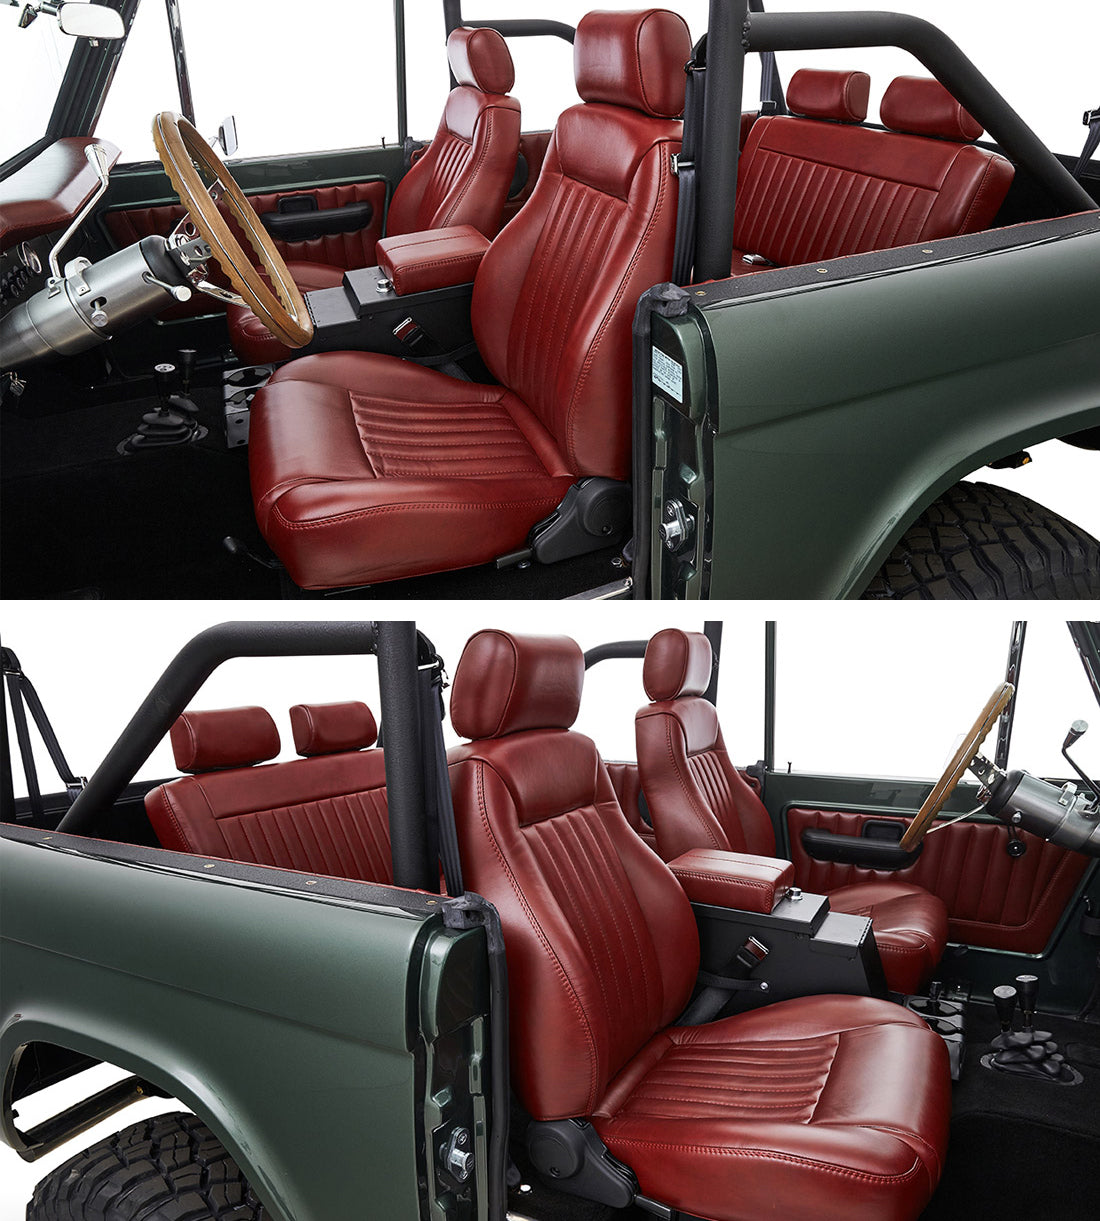 Classic Ford Broncos with Relicate Antiqued Redwood Leather Interior Seats